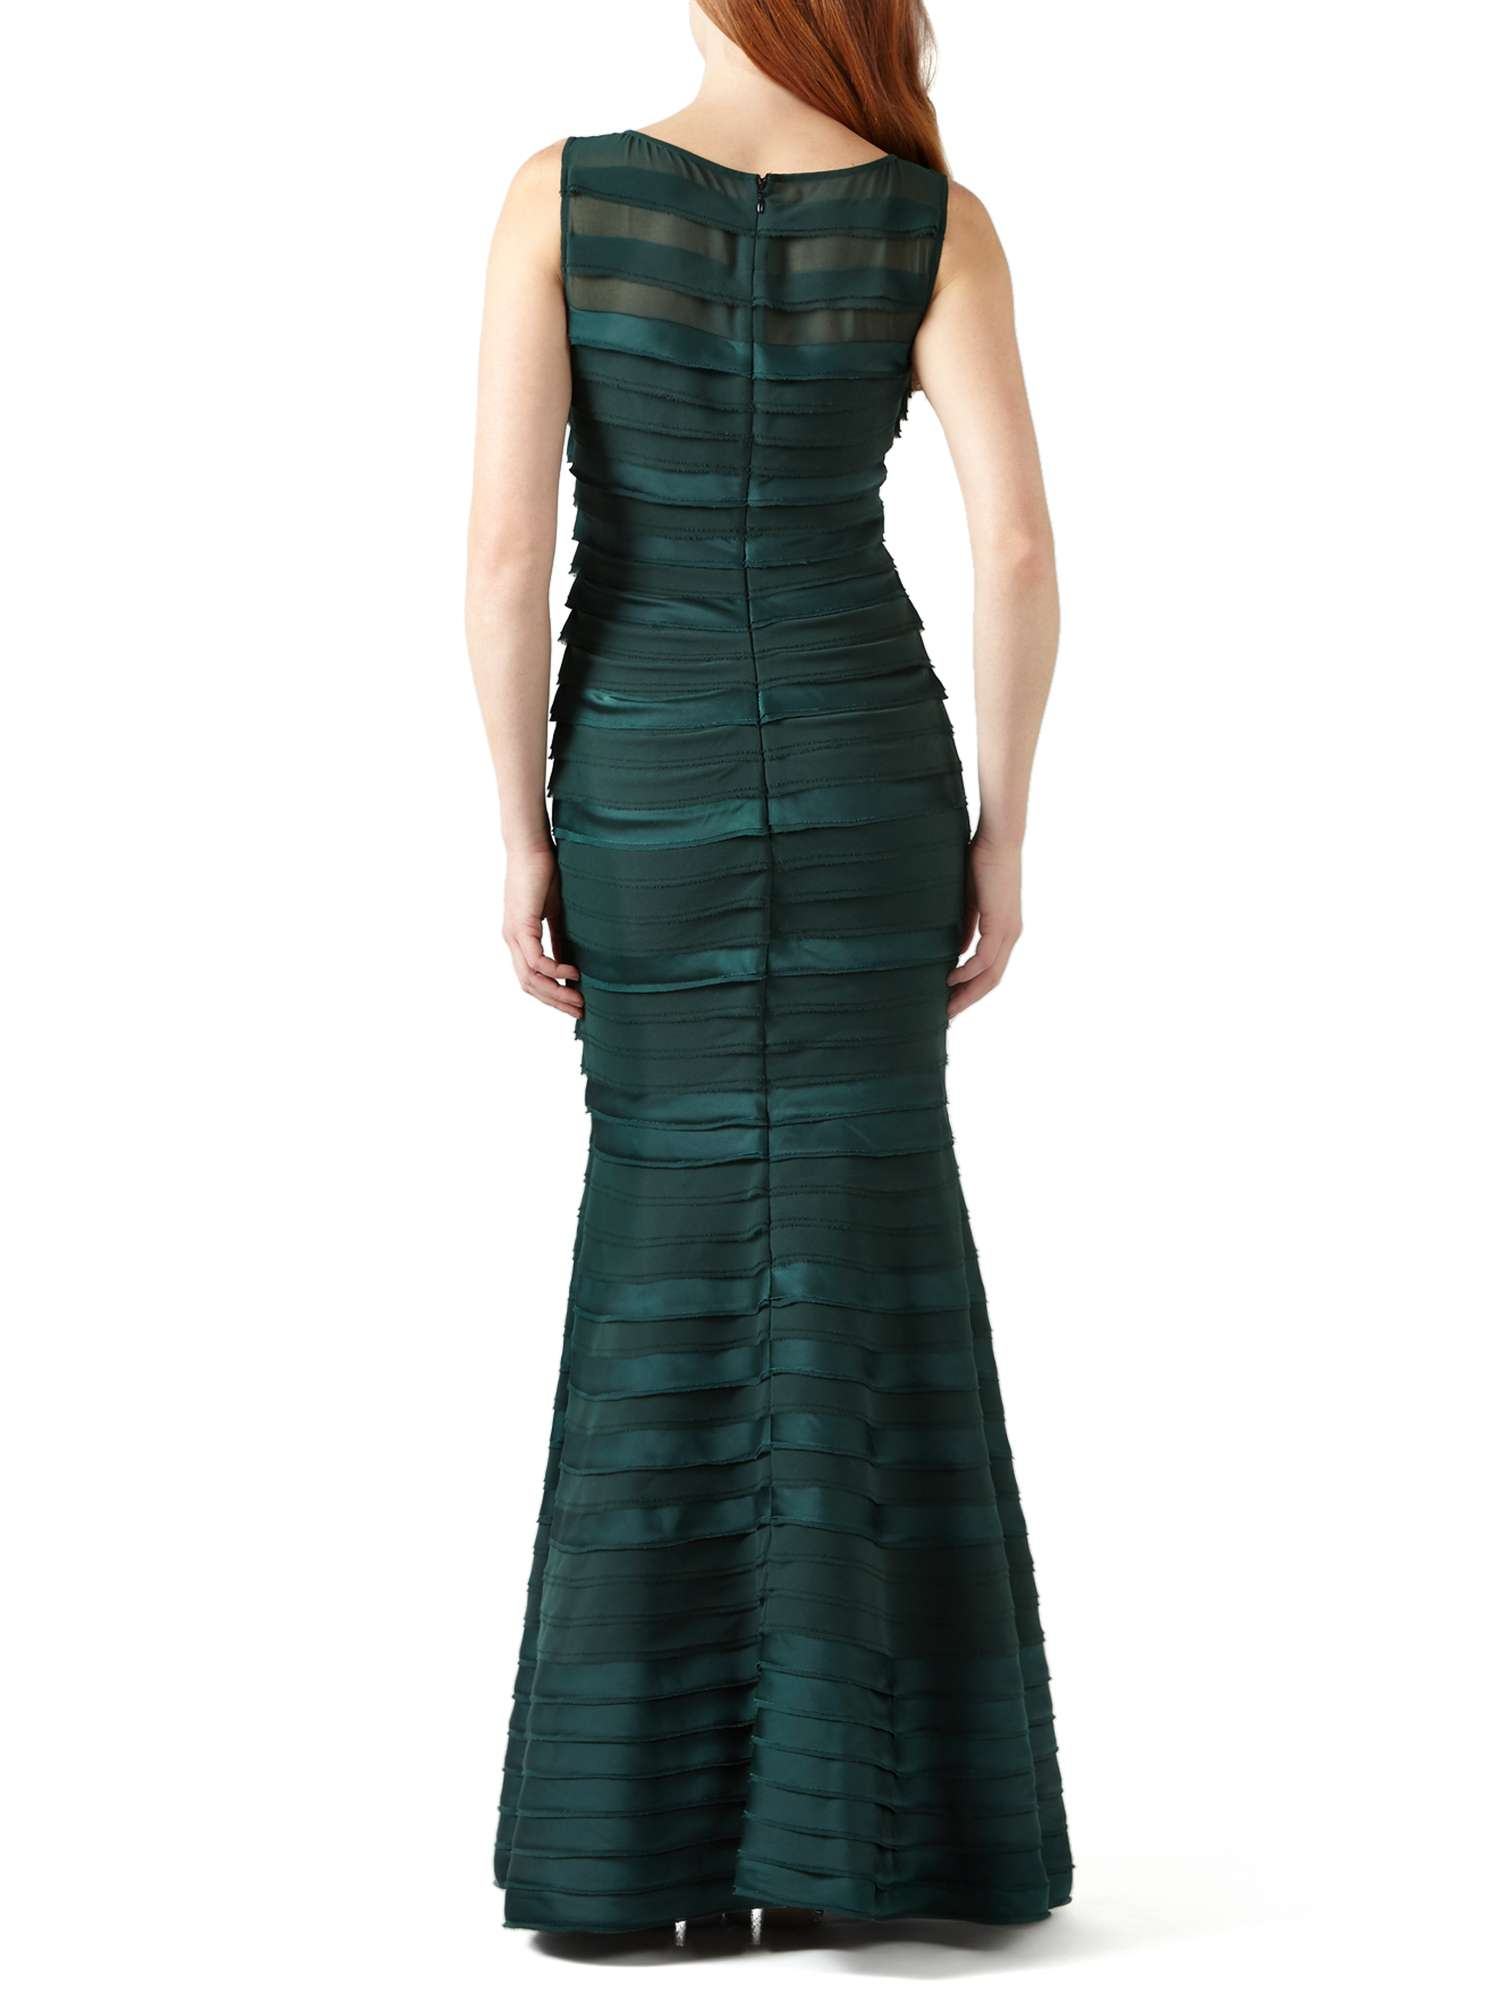 Shannon Phase Layered Eight Shannon Layered Dress Phase Eight Eight Phase Dress Layered Shannon Dress w4qH7P